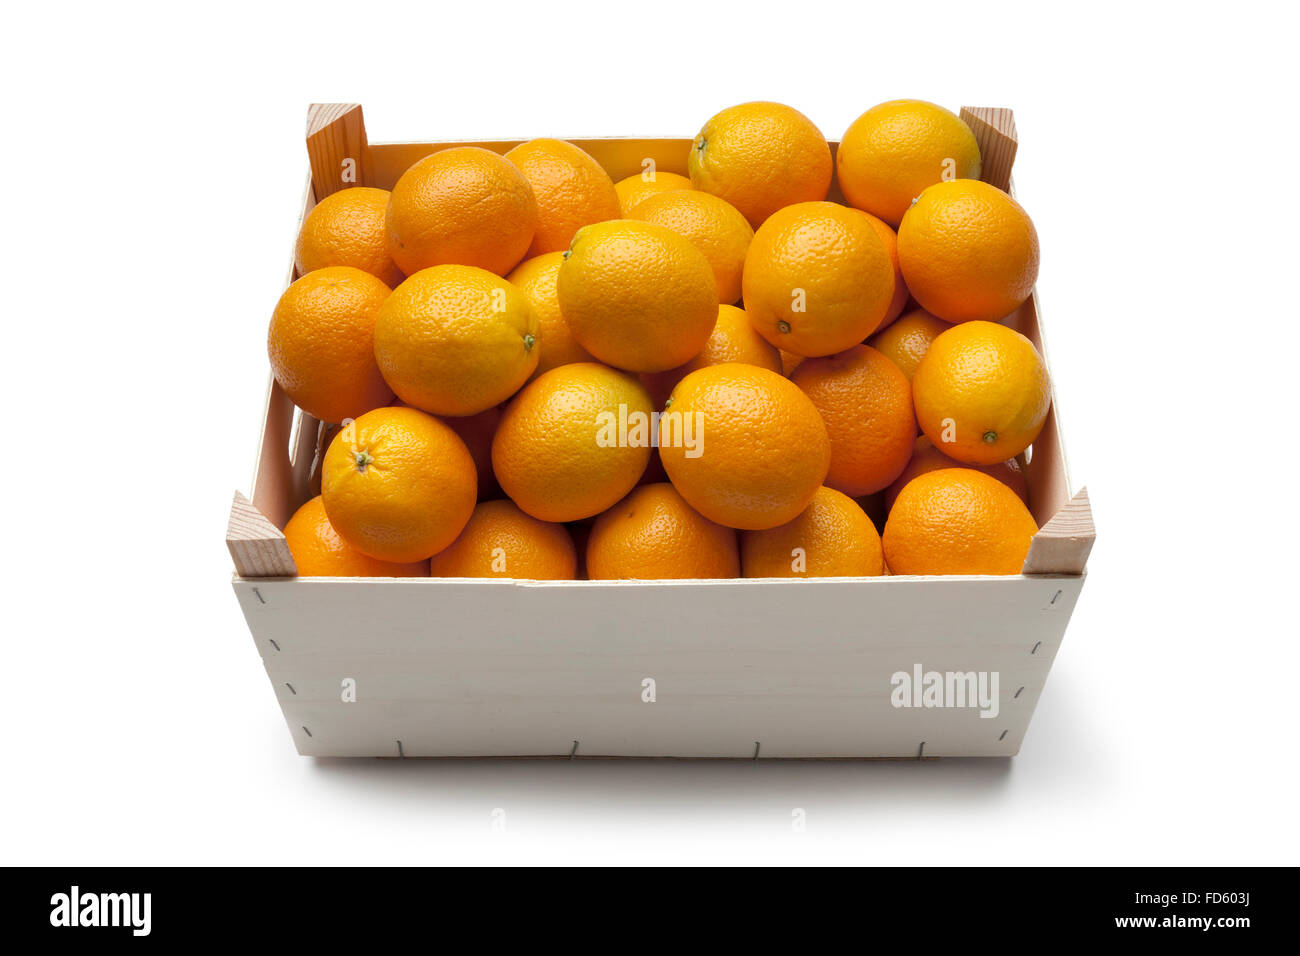 Fresh oranges in a container on white background - Stock Image